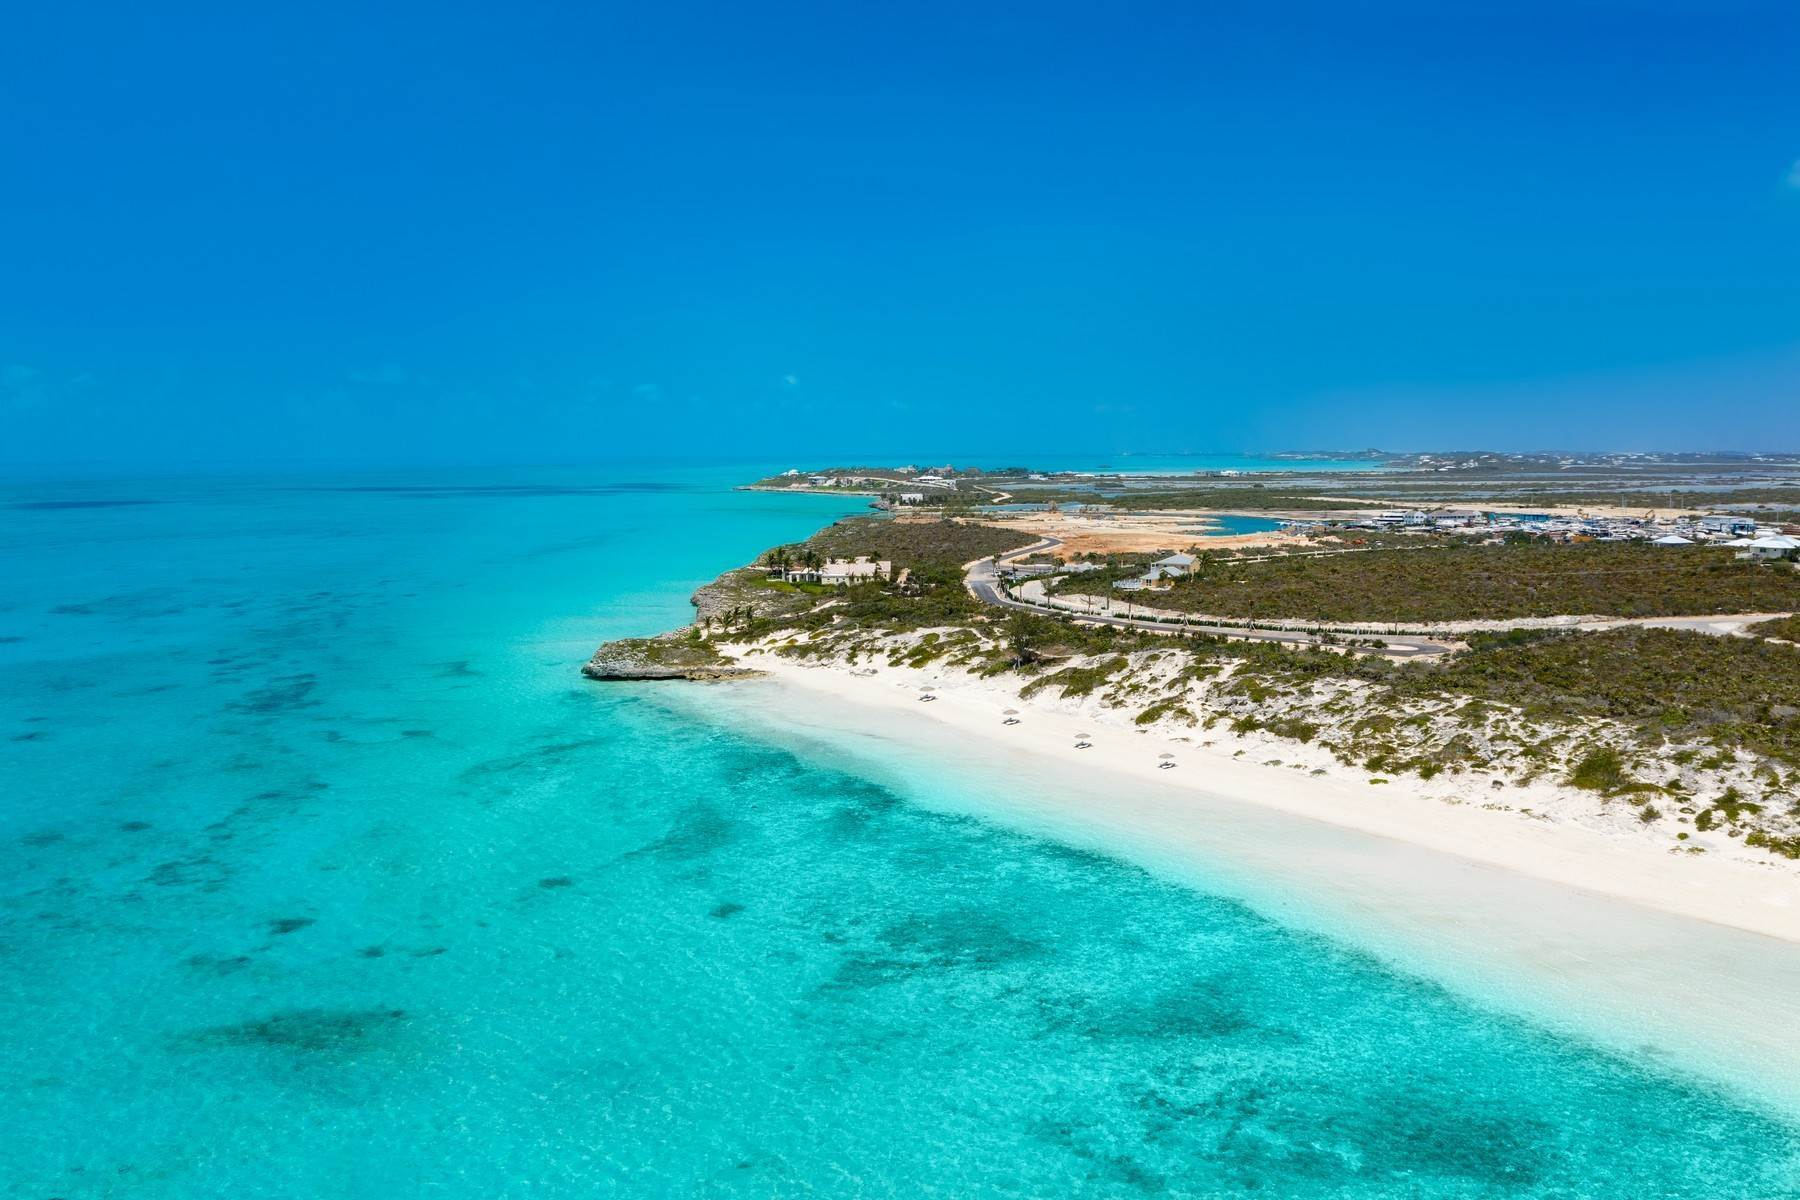 17. Single Family Homes for Sale at LONG BAY BEACH DUNE VILLA 1 AT SOUTH BANK - THE OCEAN ESTATE South Bank, Long Bay, Providenciales Turks And Caicos Islands